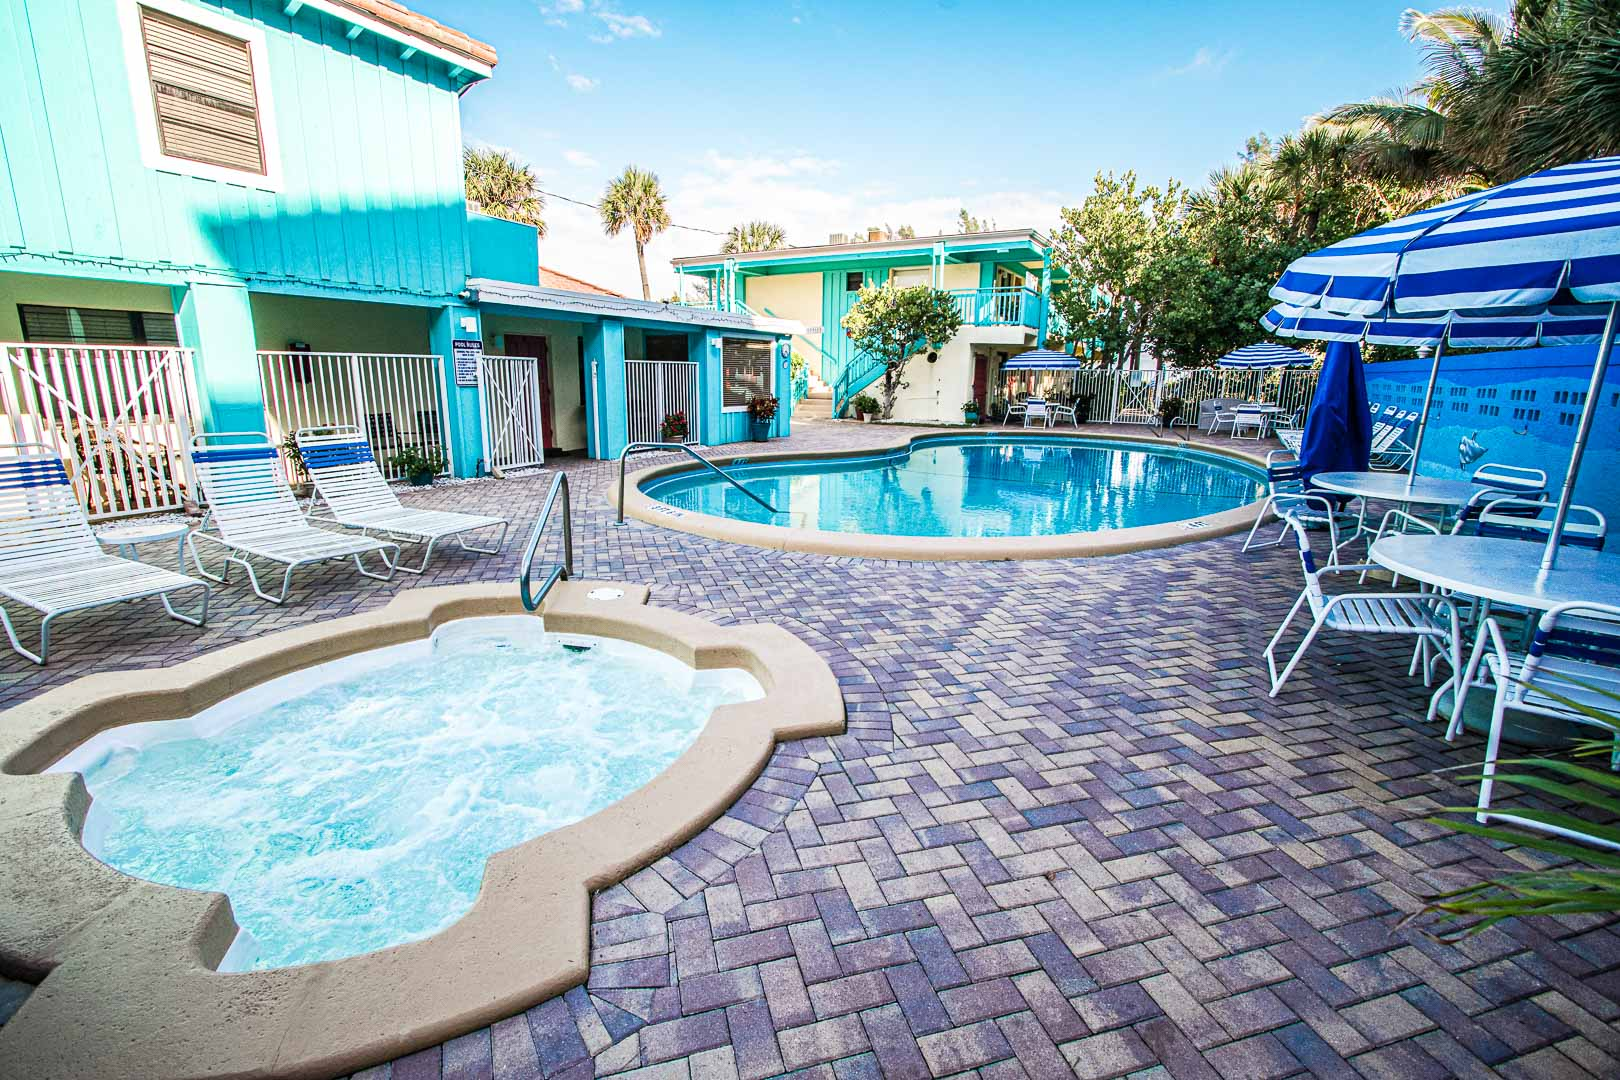 A colorful outdoor swimming pool and jacuzzi at VRI's Sand Dune Shores in Florida.